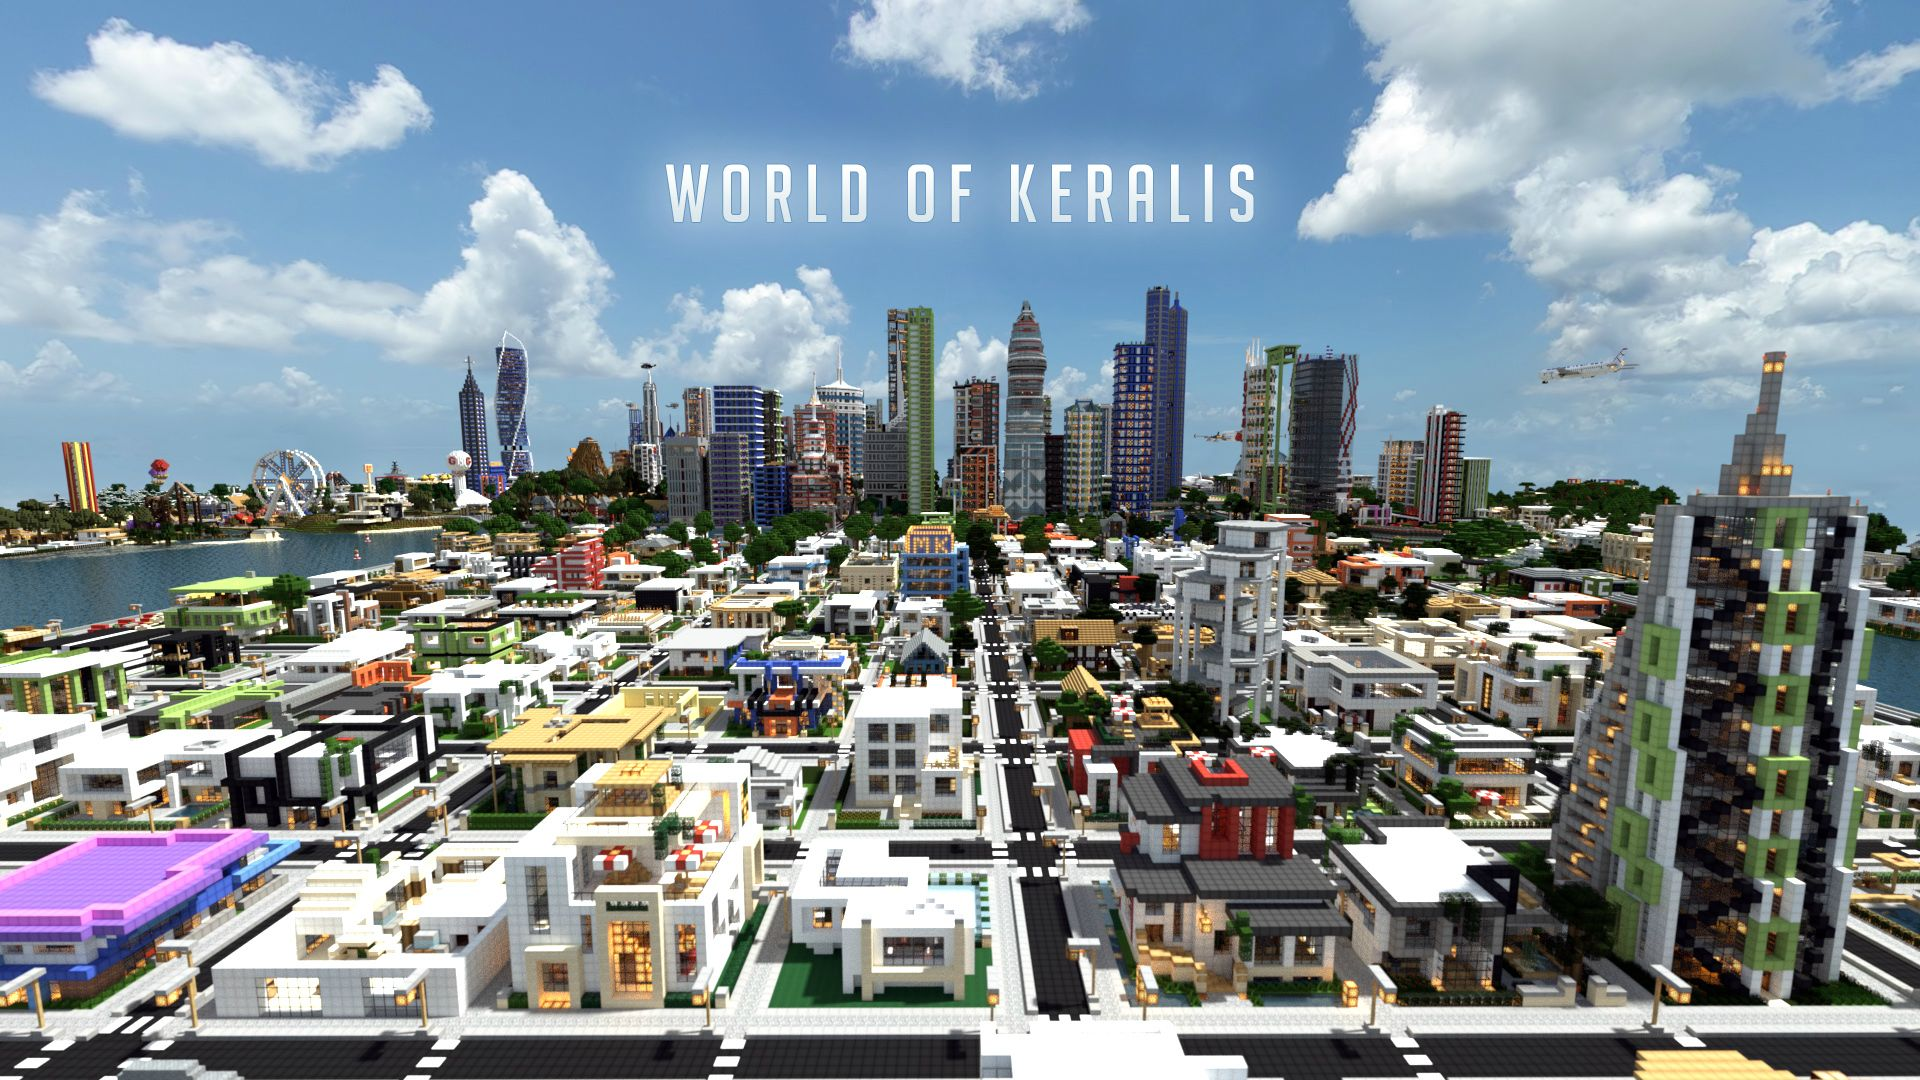 World Of Keralis Wallpaper Image